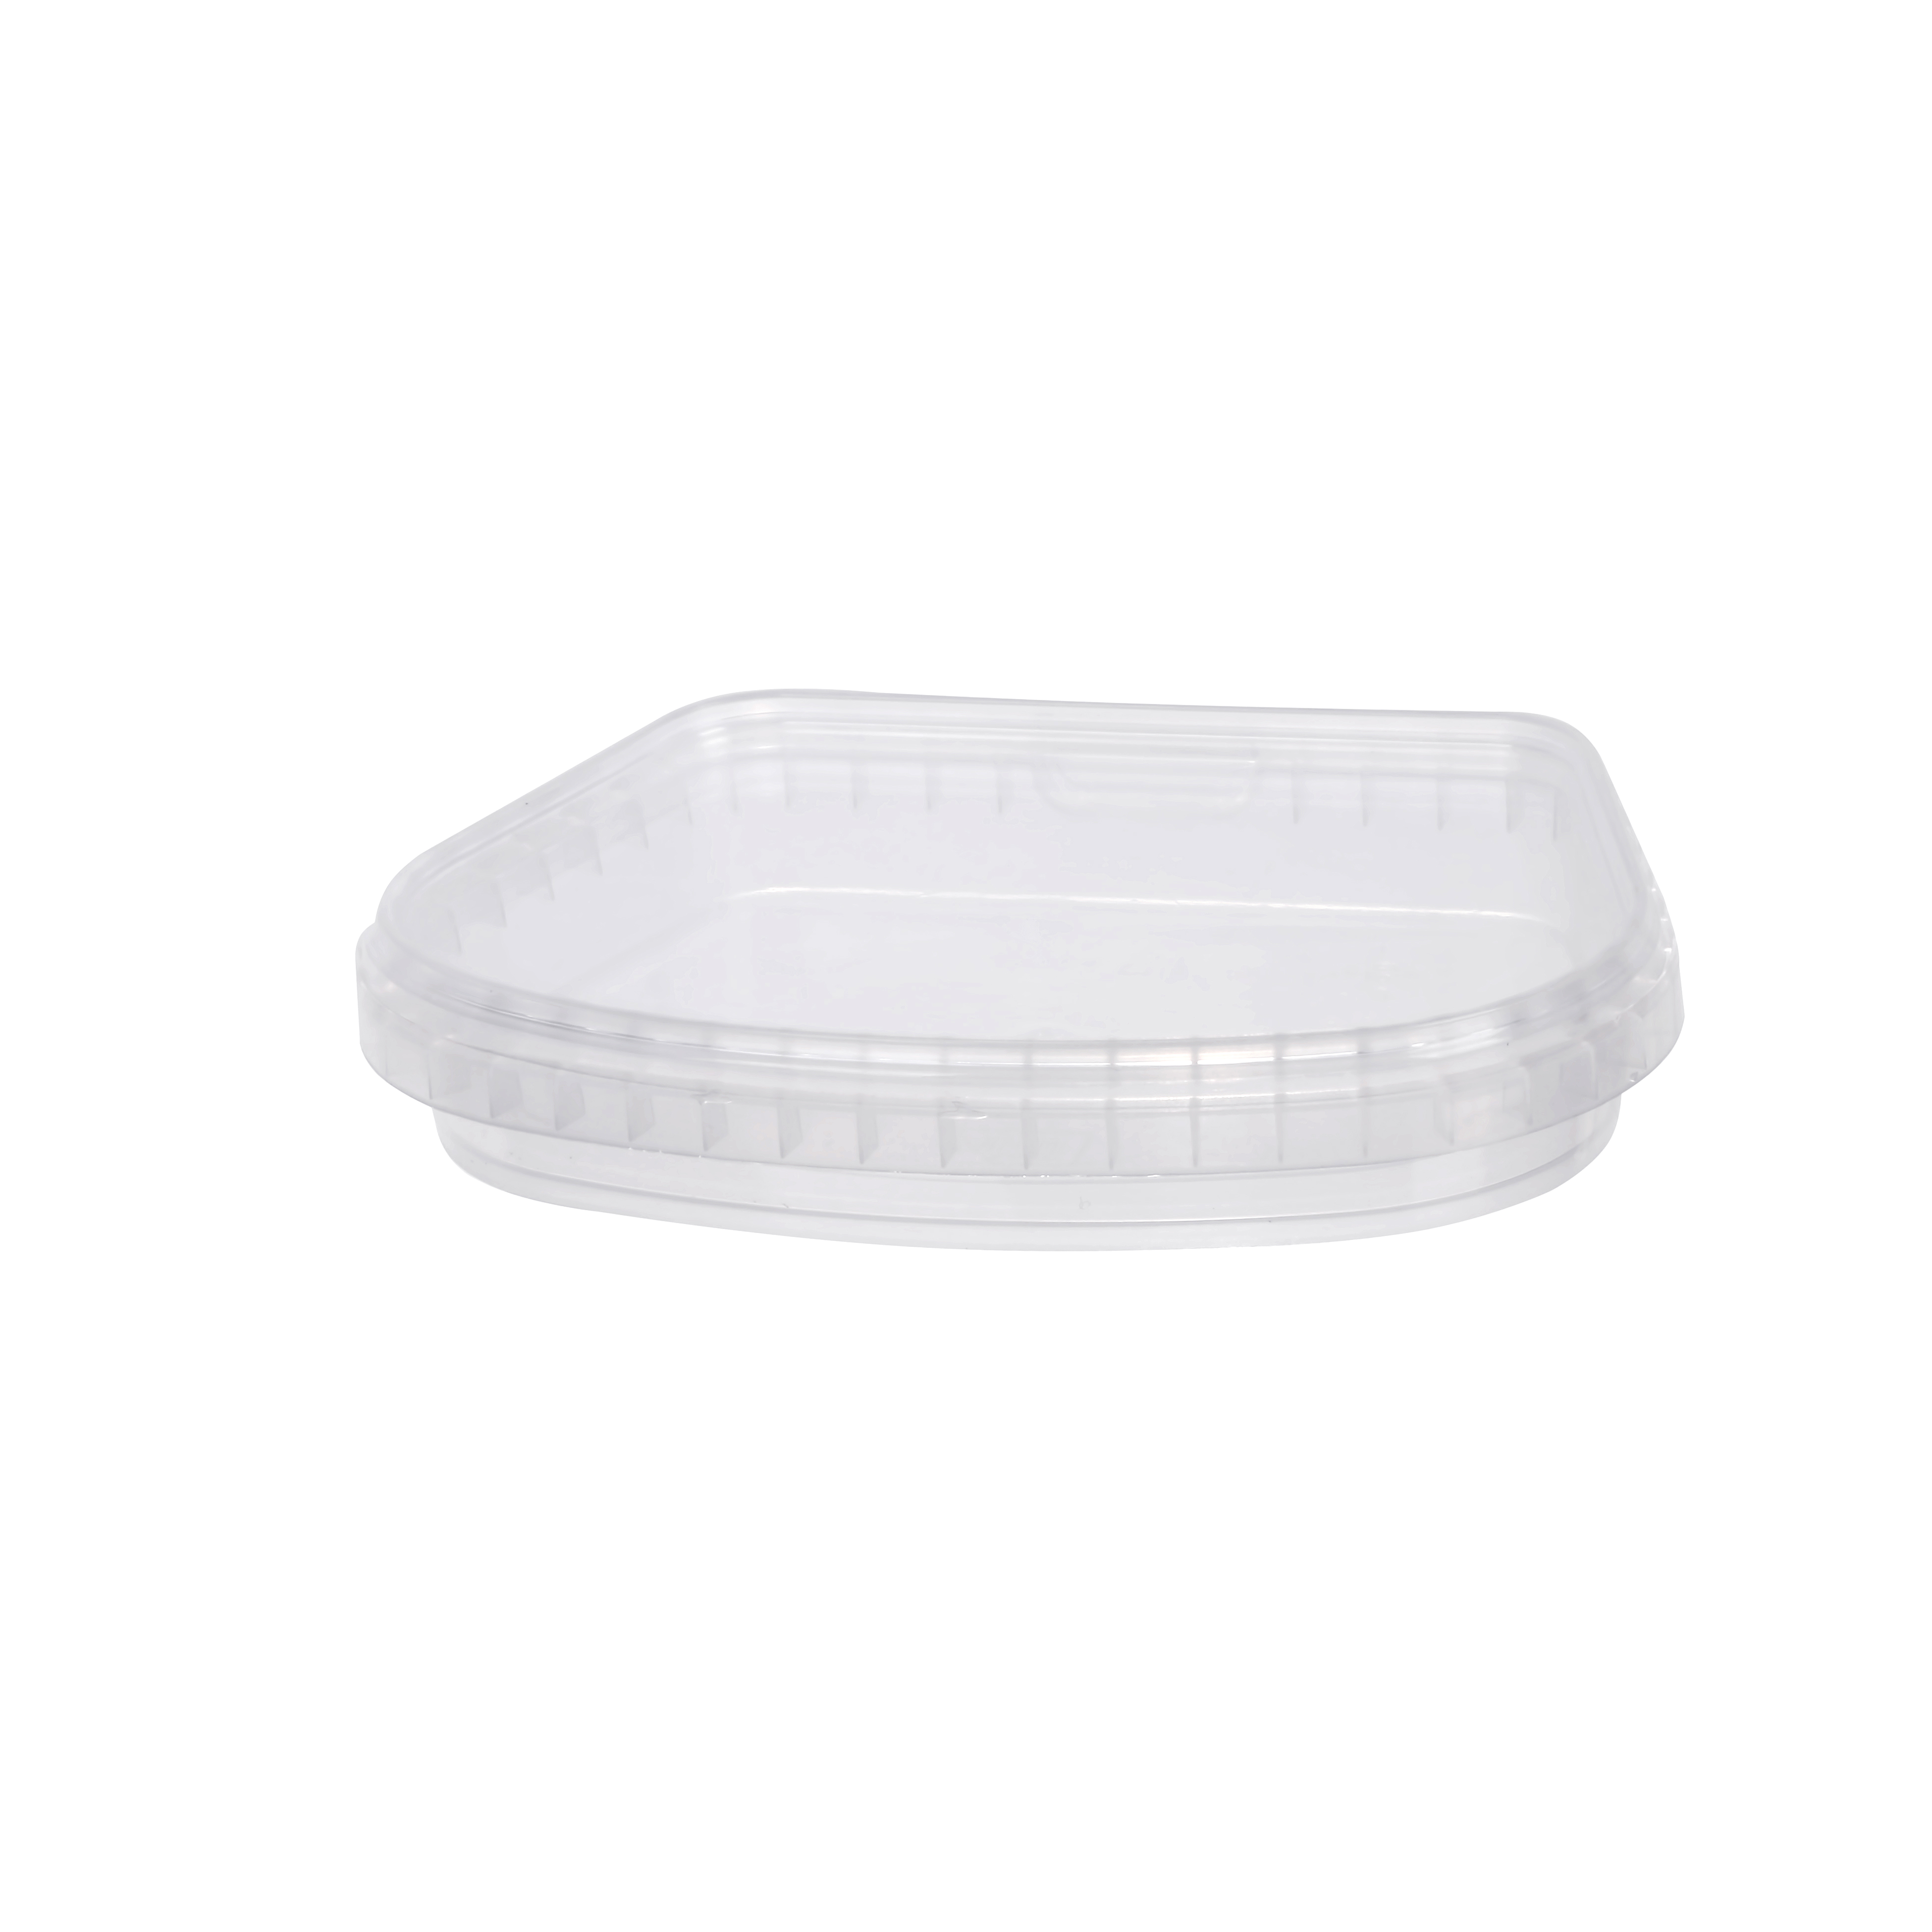 Hermetic  Food plastic containers - 170 ml volume